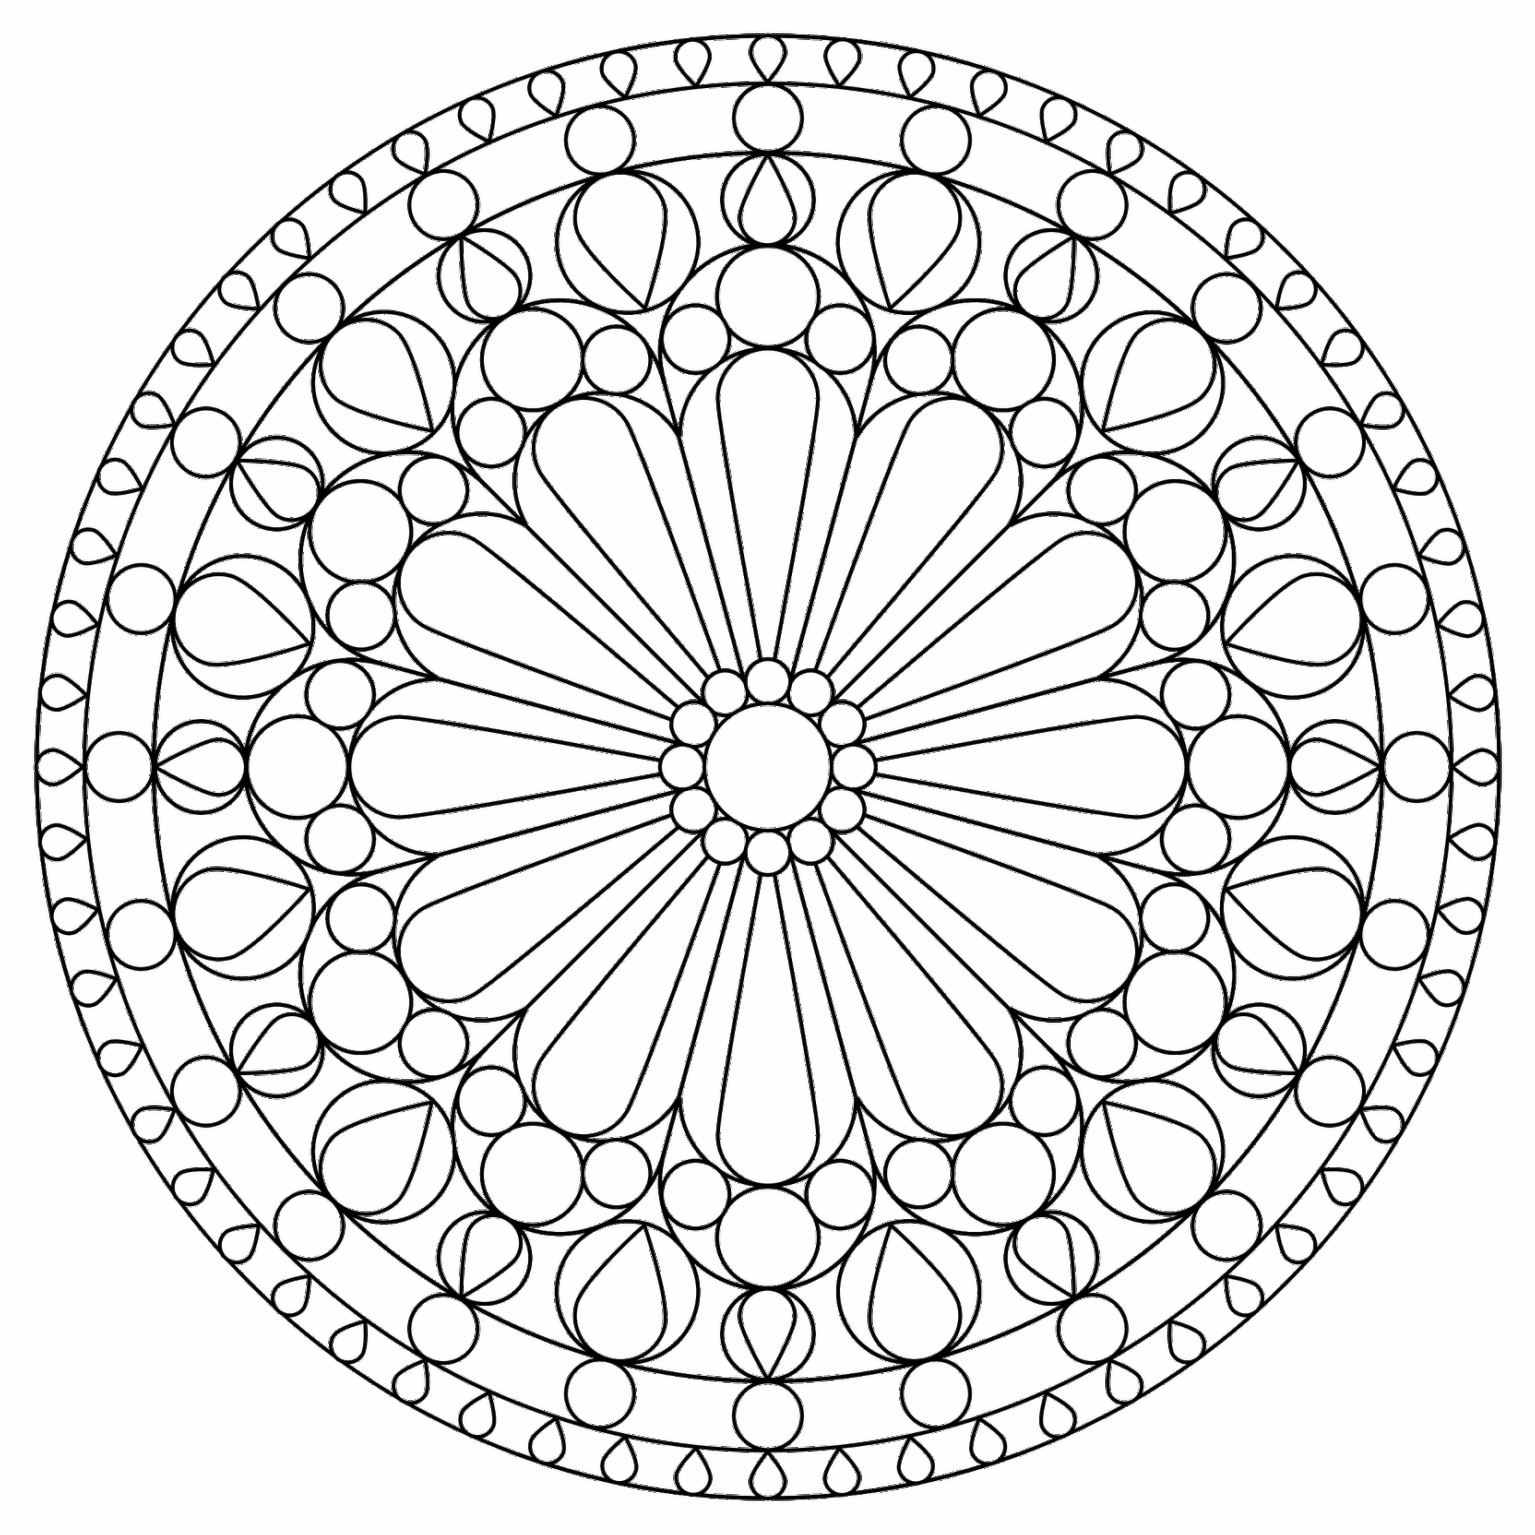 mandala pictures to color mandalas to print for free mandalas kids coloring pages color mandala pictures to